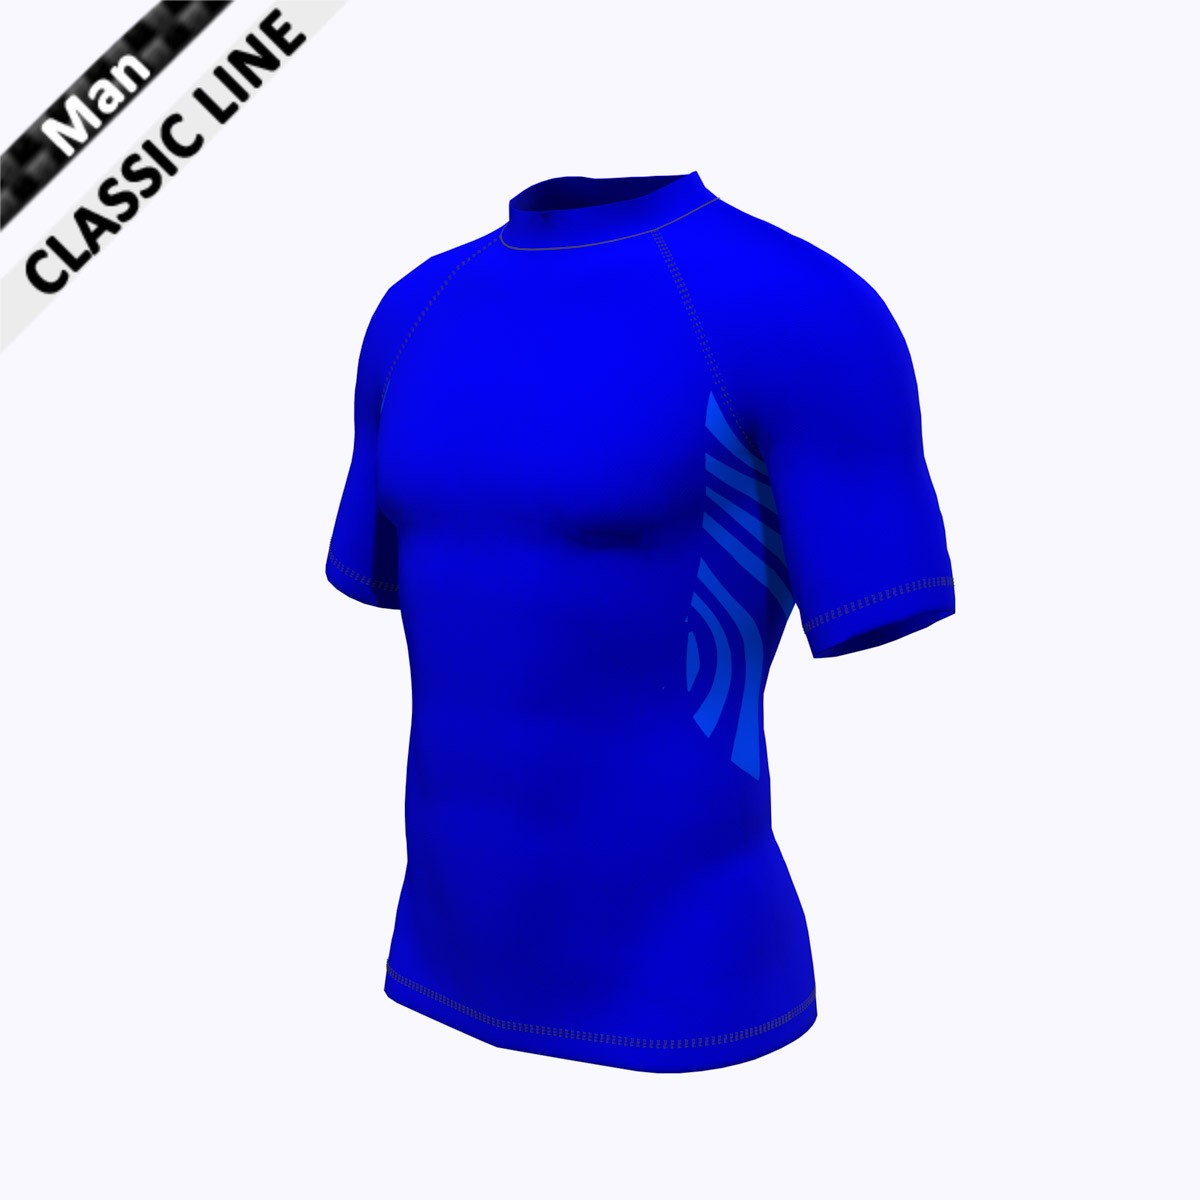 2skin - Shirt royal blau